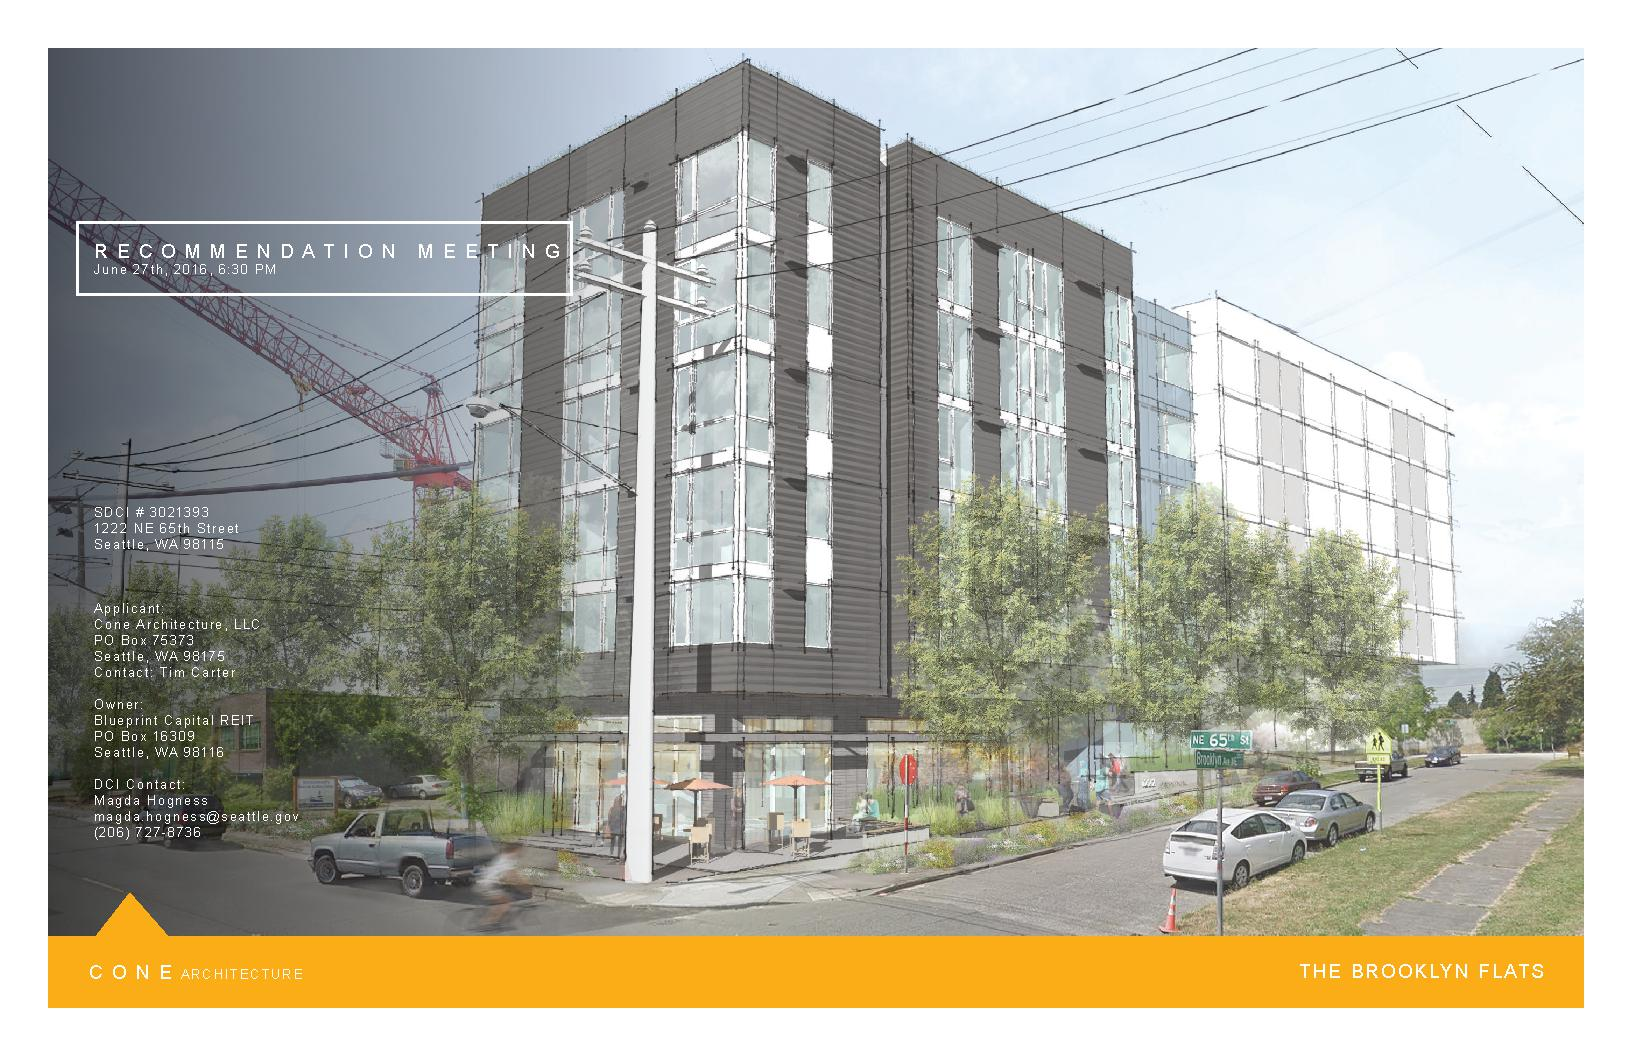 1222 ne 65th st seattle in progress view full proposal detailed information and renderings malvernweather Gallery